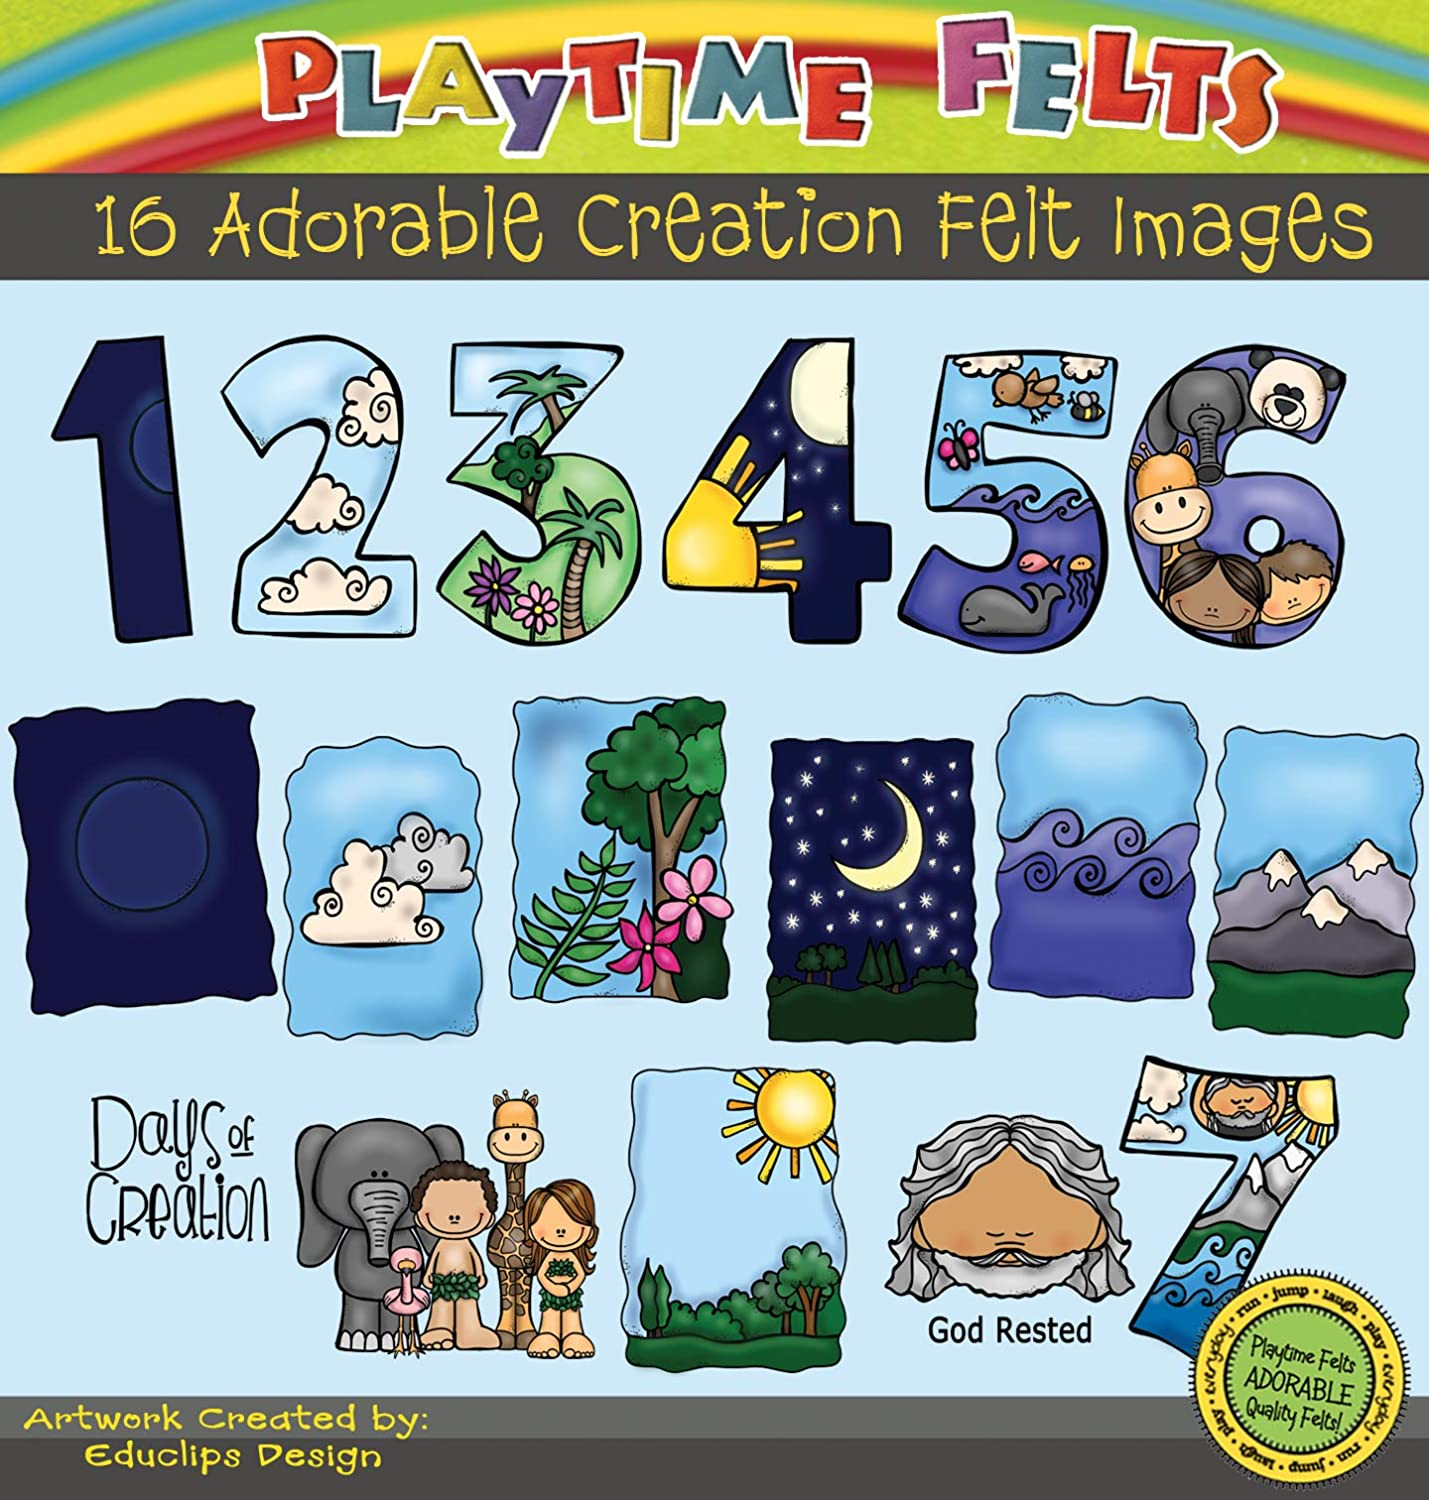 Amazon Com Days Of Creation Felt Figures For Flannel Board Fun By Playtime Felts Toys Games